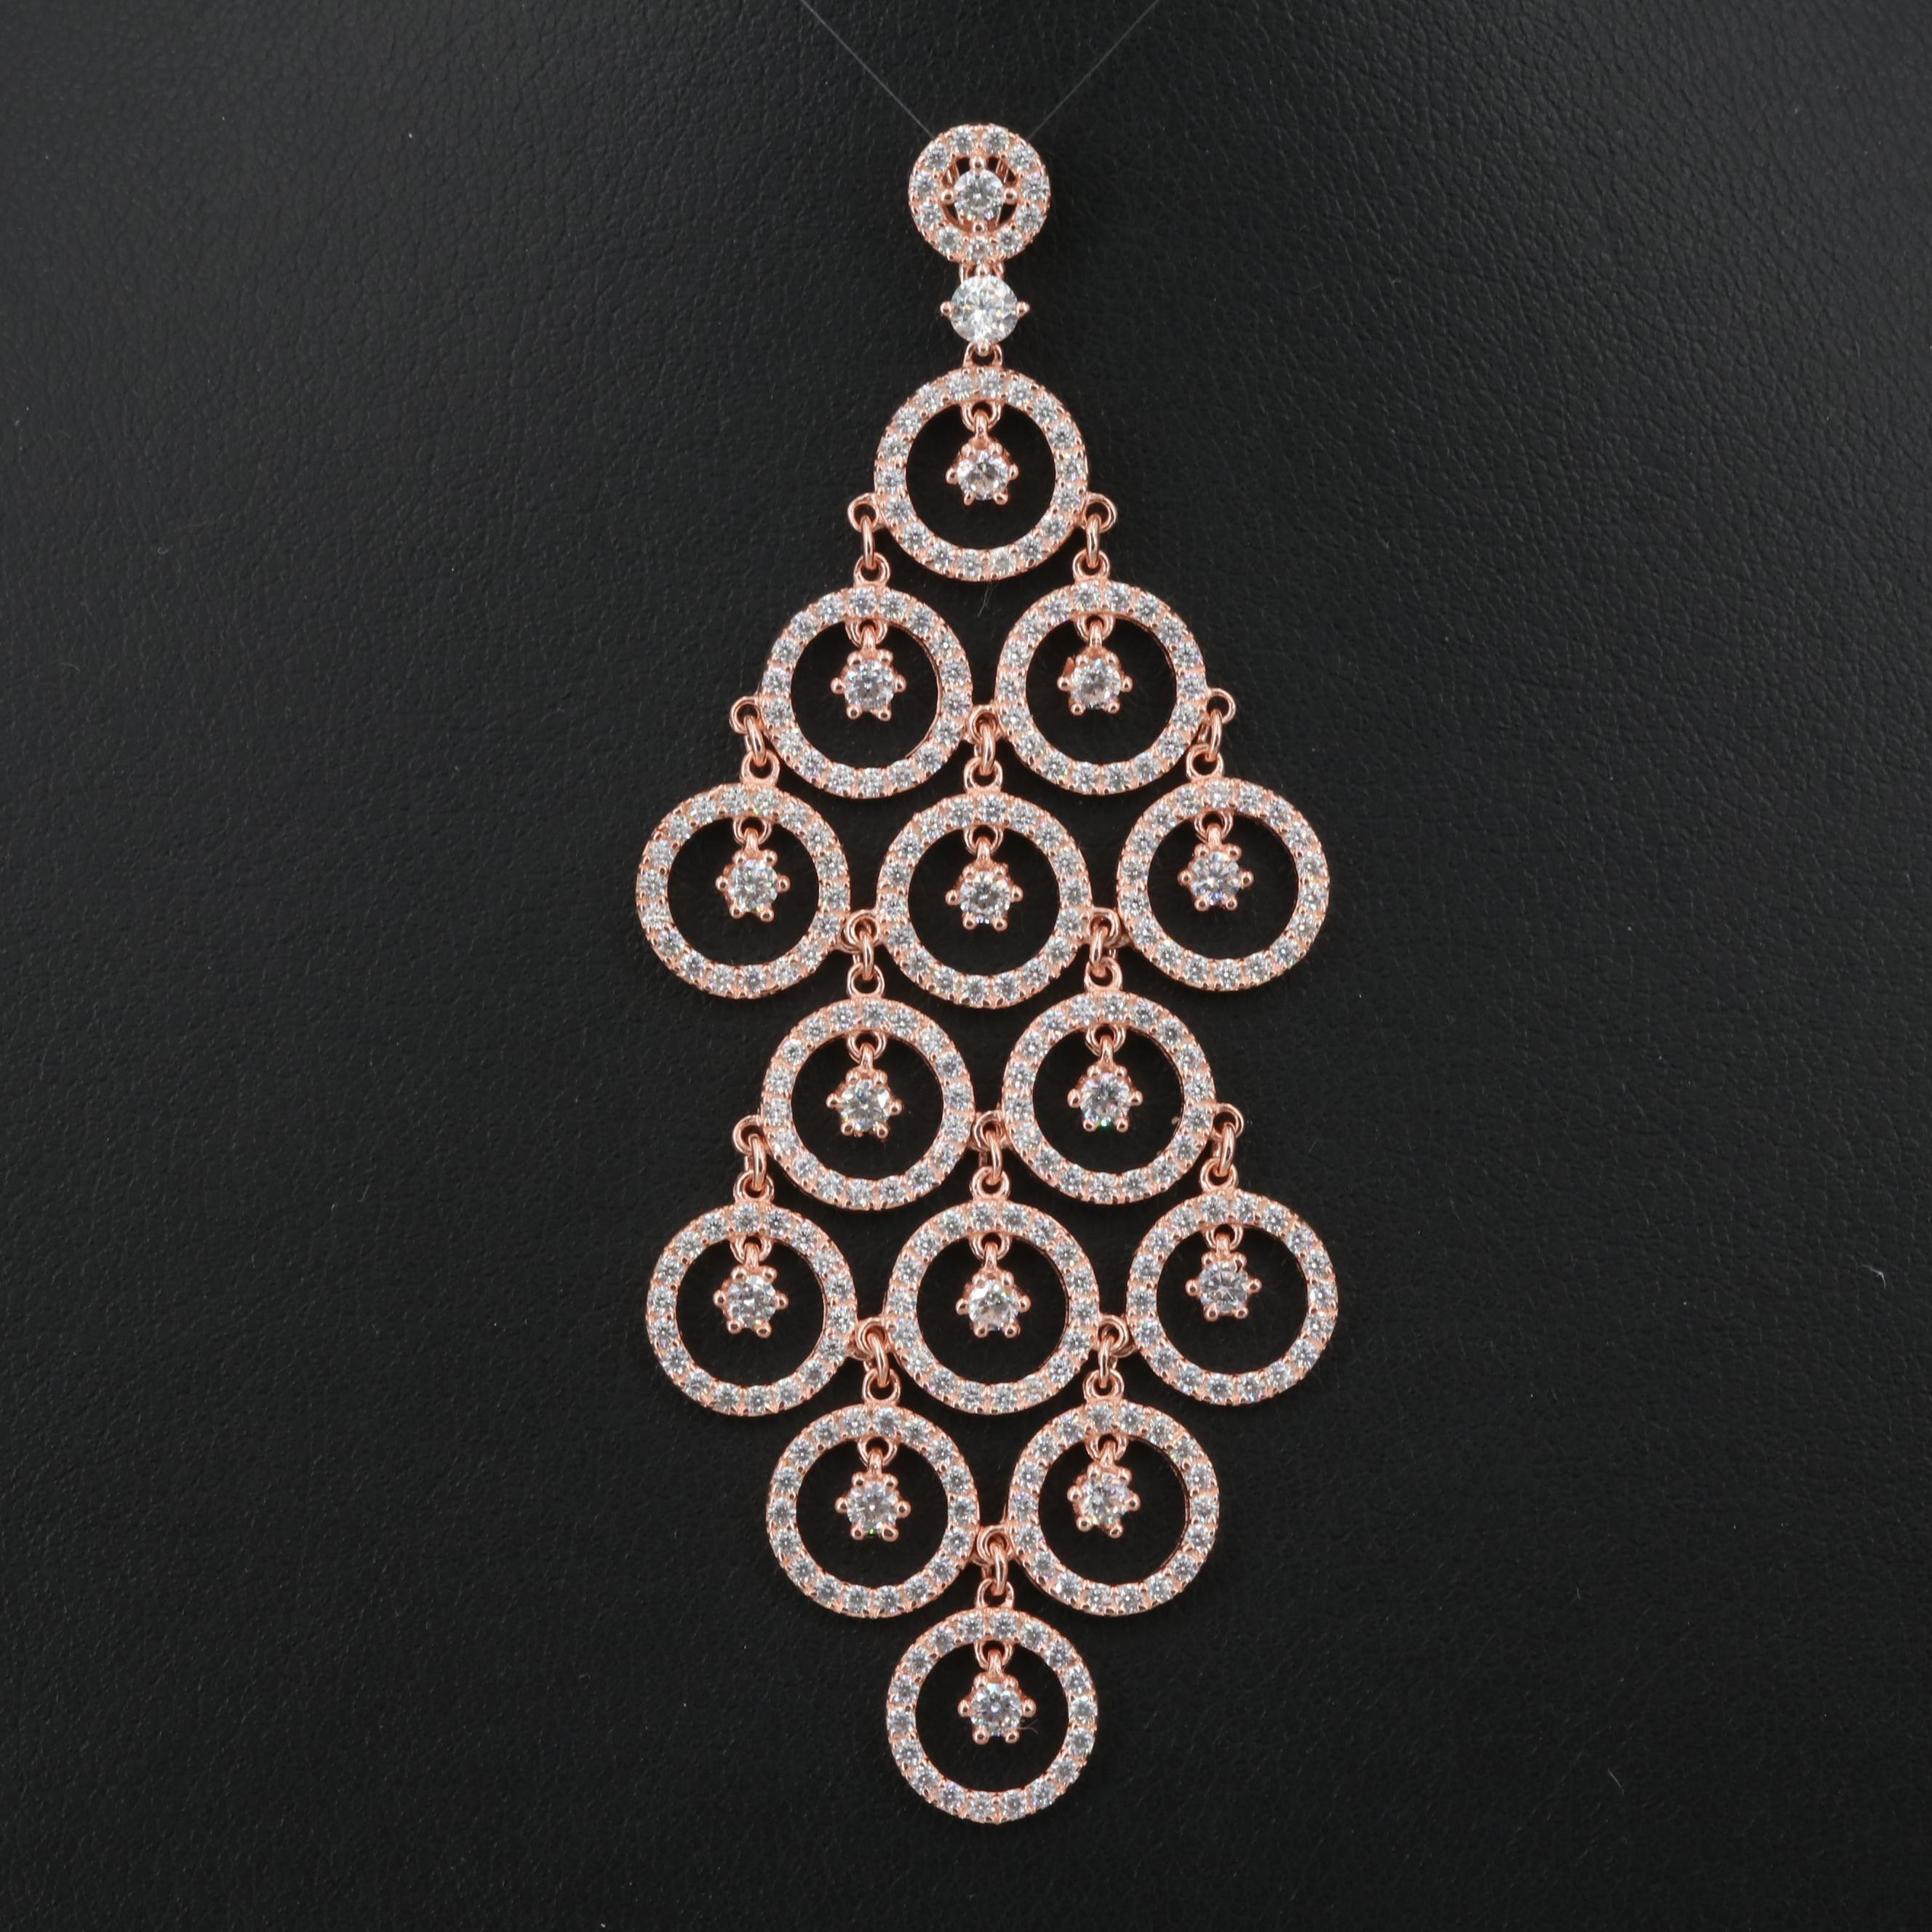 Rose Wash on Sterling Silver Cubic Zirconia Chandelier Pendant